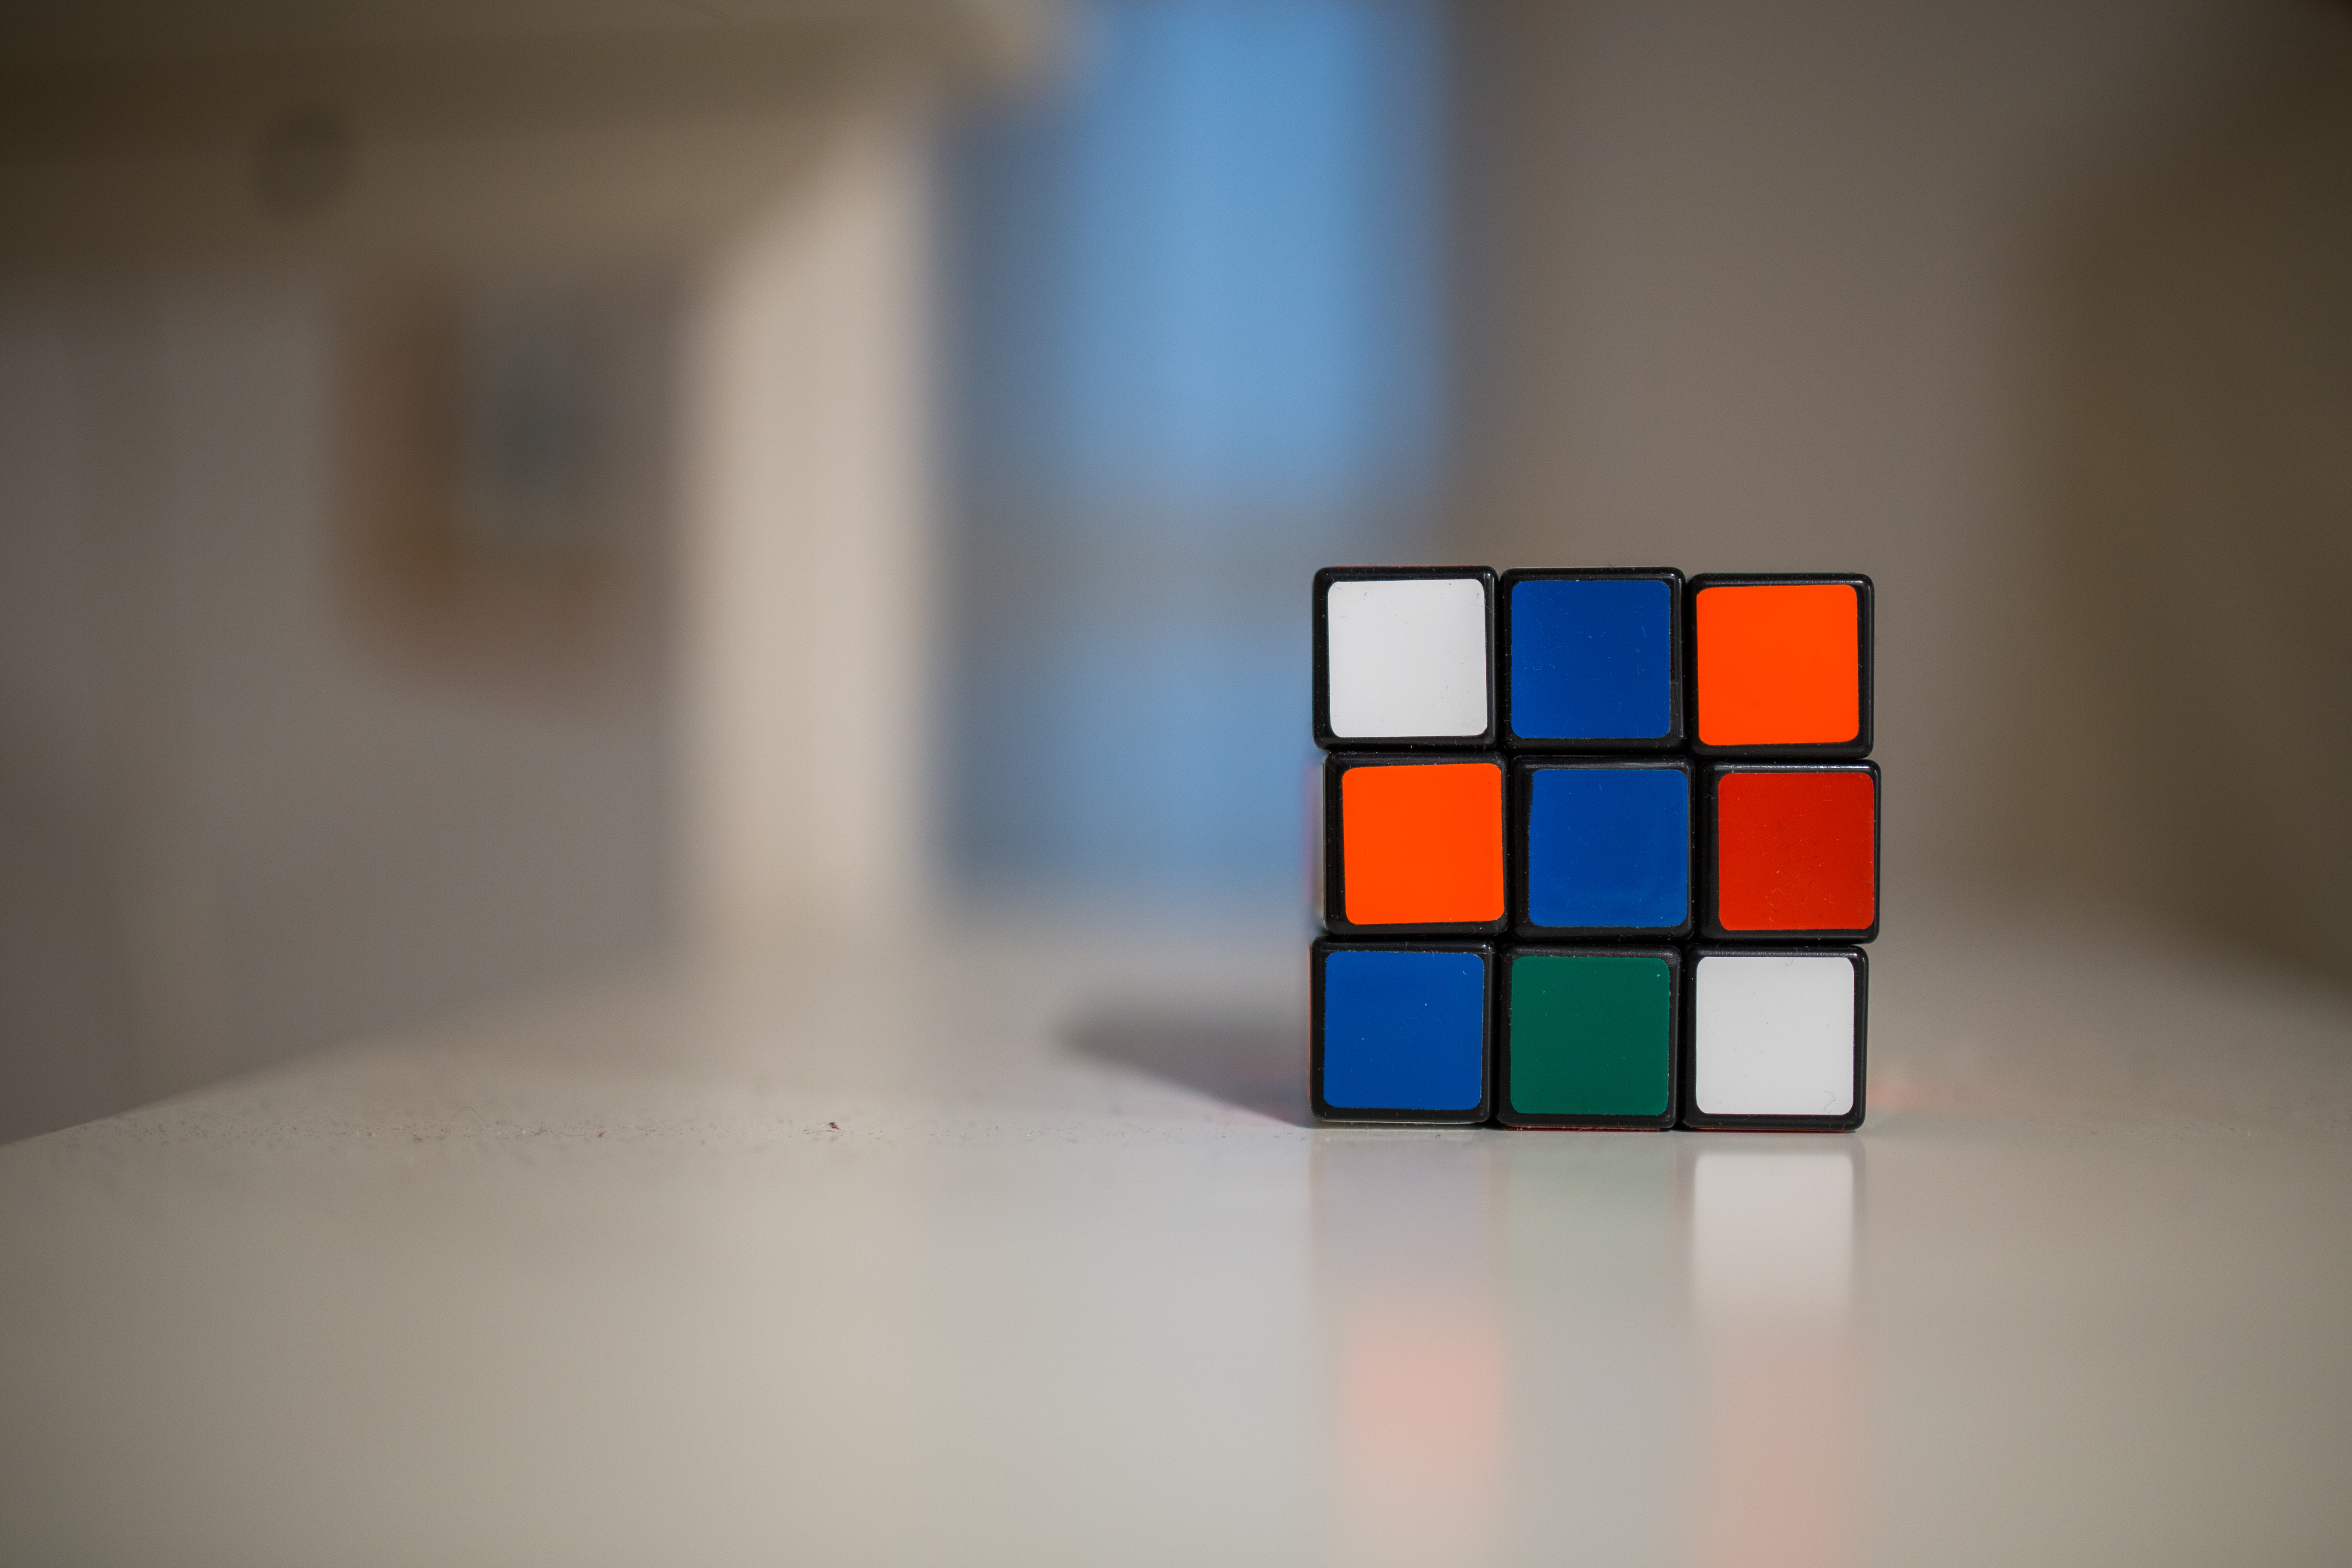 4k Hd Wallpapers For Iphone Blue And White Orange Green Rubik S Cube 183 Free Stock Photo